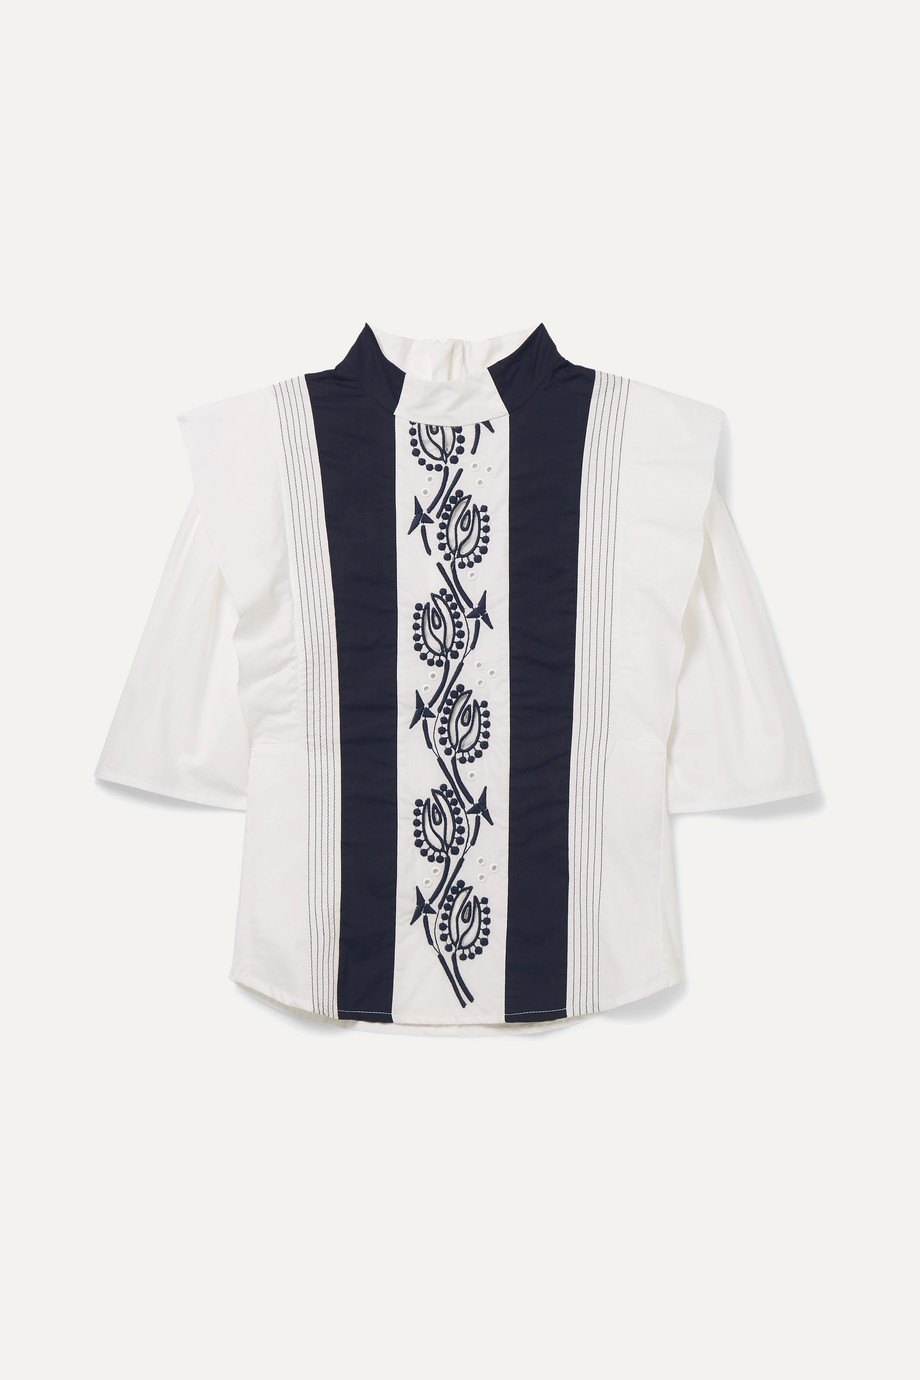 Chloé Kids Ages 6 - 12 embroidered cotton blouse